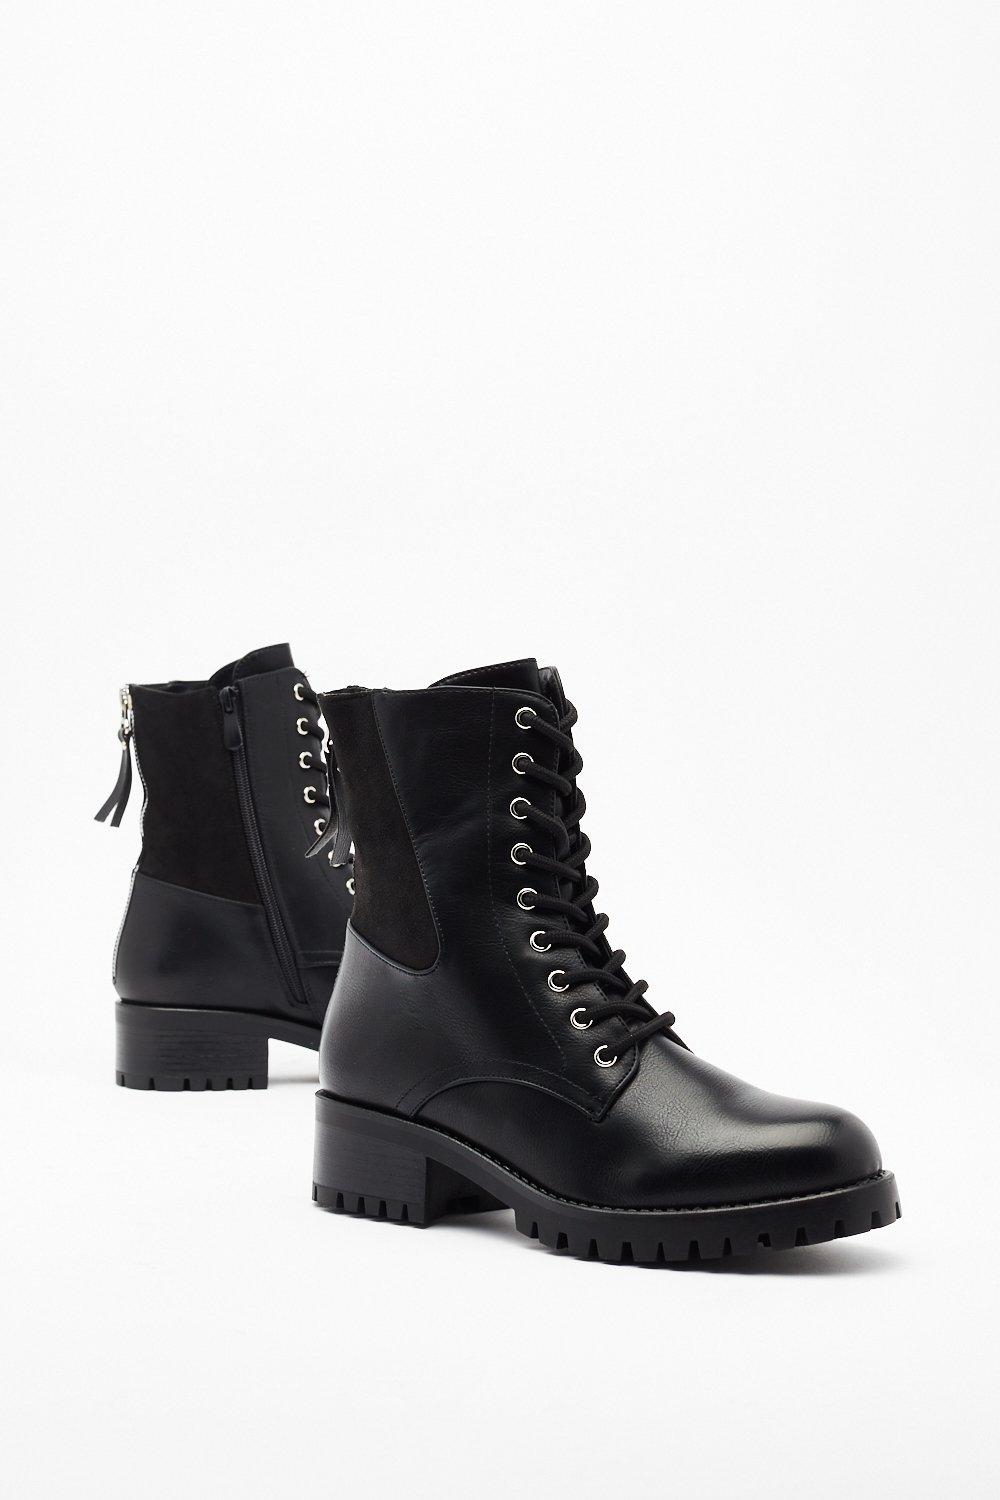 Image of Pu Suede Panel Lace Up Biker Boots